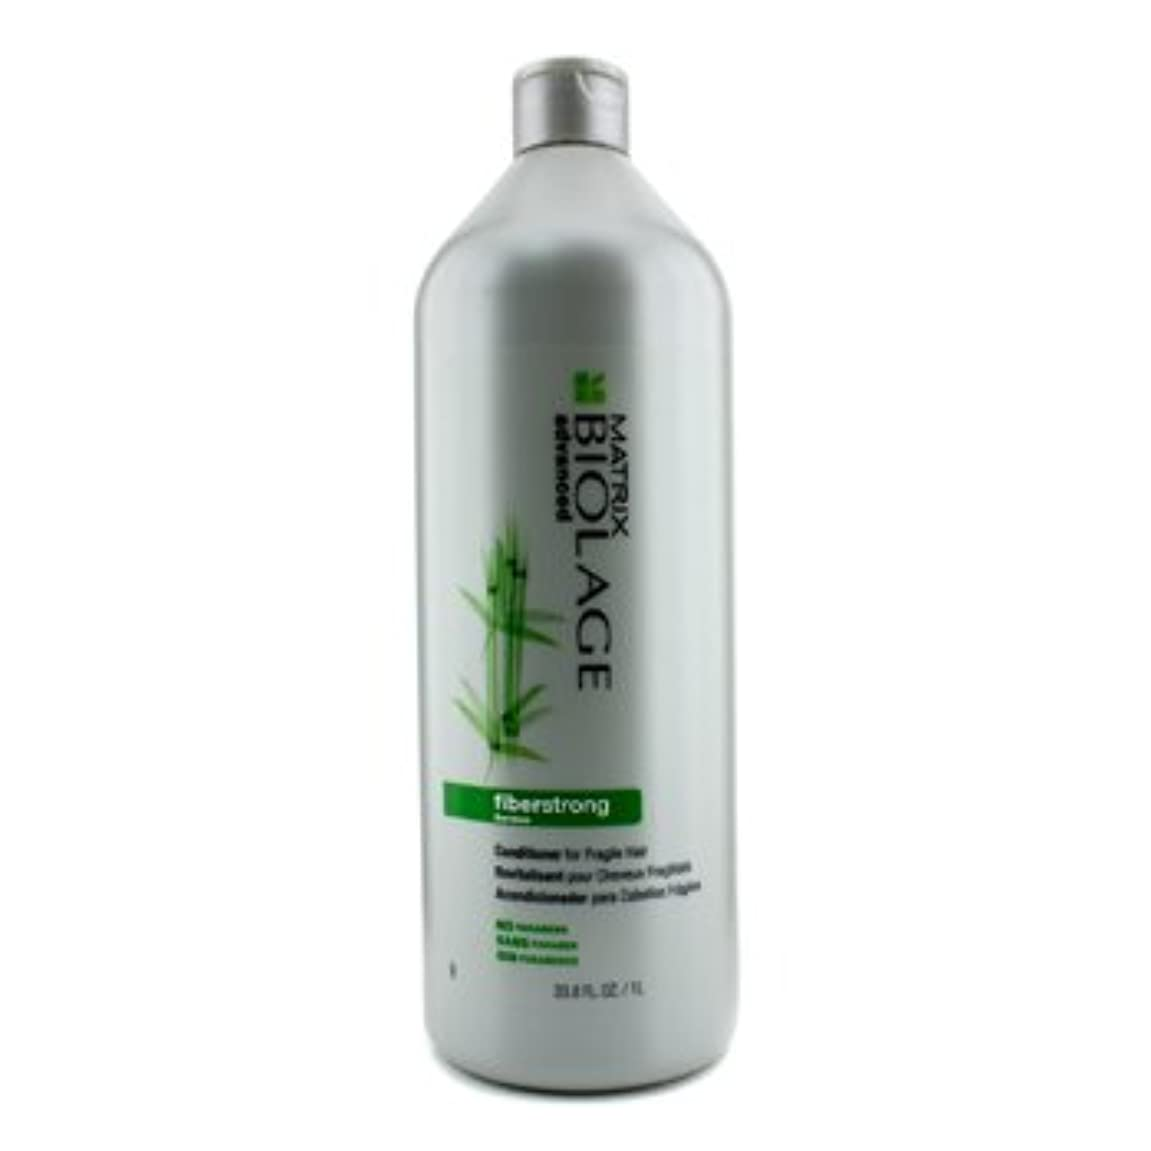 歌満たす何十人も[Matrix] Biolage Advanced FiberStrong Conditioner (For Fragile Hair) 1000ml/33.8oz